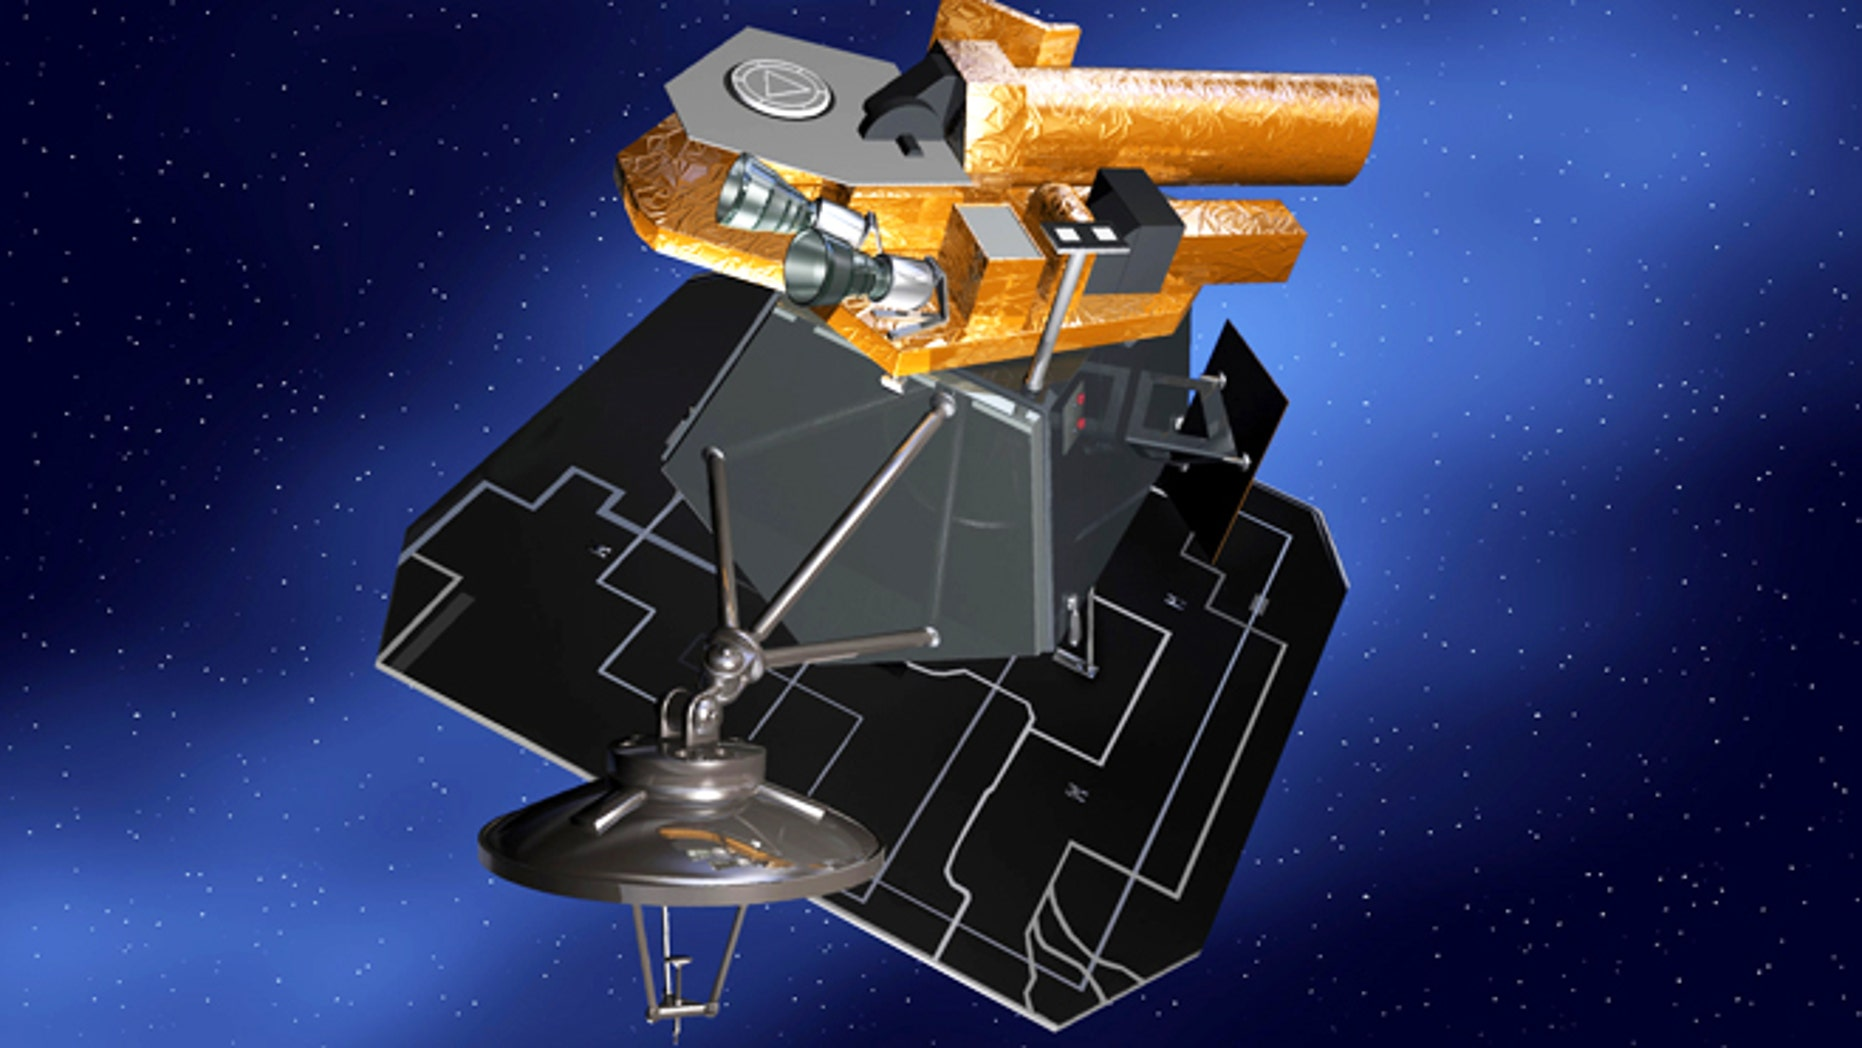 Sept. 20, 2013: NASA declared an end to the Deep Impact spacecraft's mission after failing to regain contact with it.